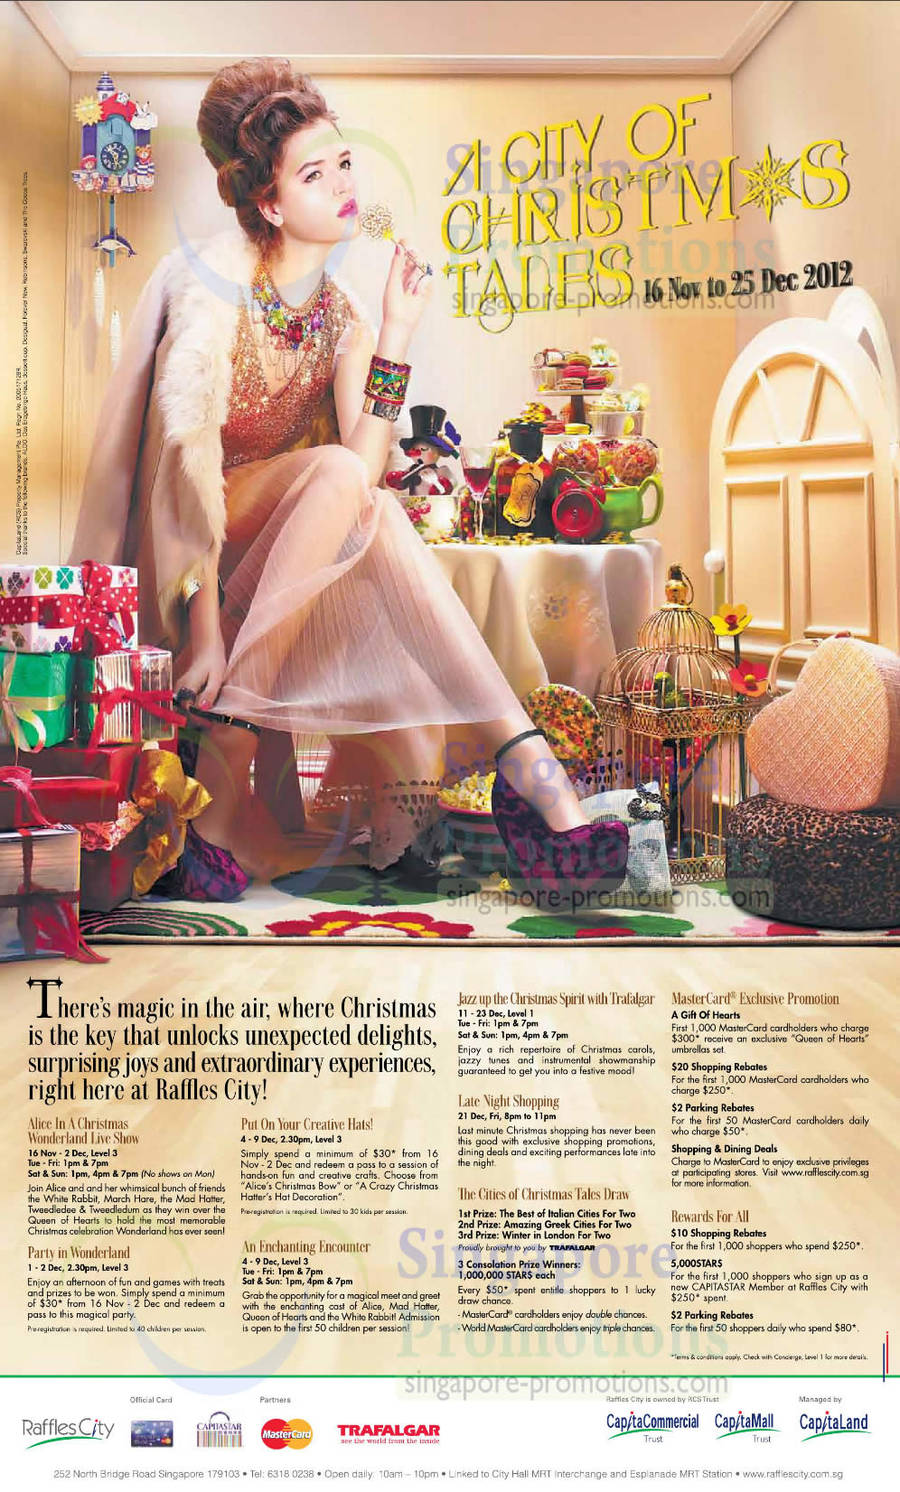 Christmas Treats Till 25 Dec 2012